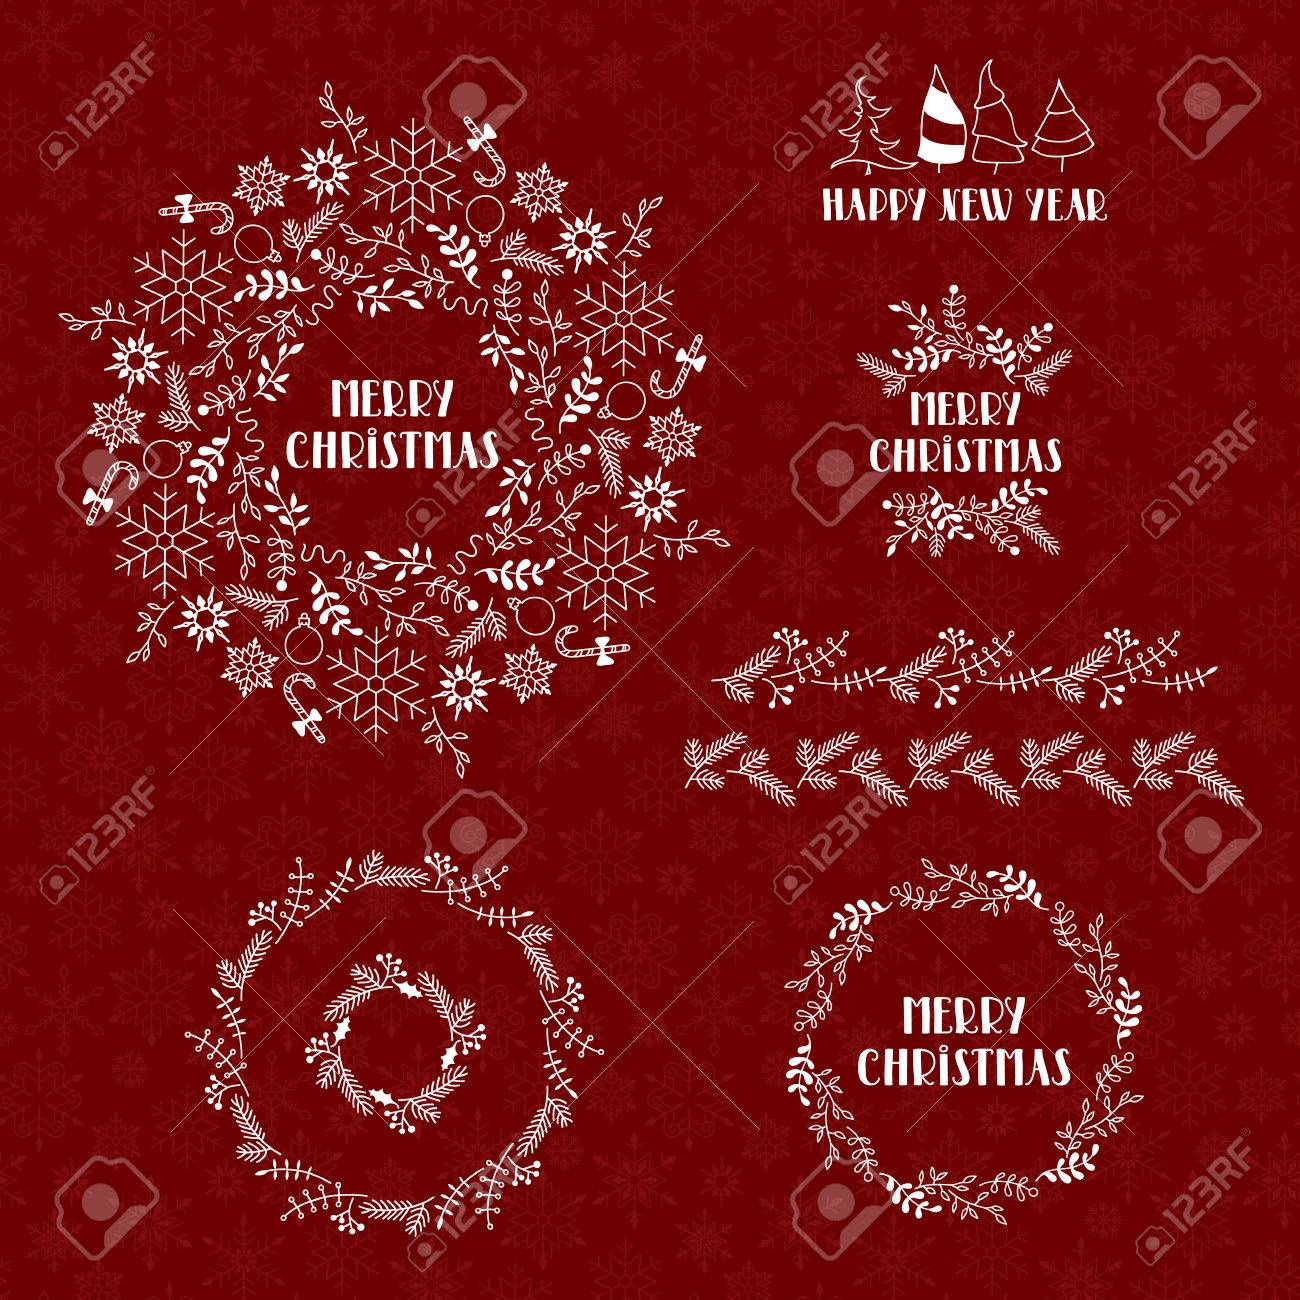 Merry Christmas and Happy New Year. Vector illustration. White Christmas wreaths on red background. Seamless pattern from snowflakes. - 64453720